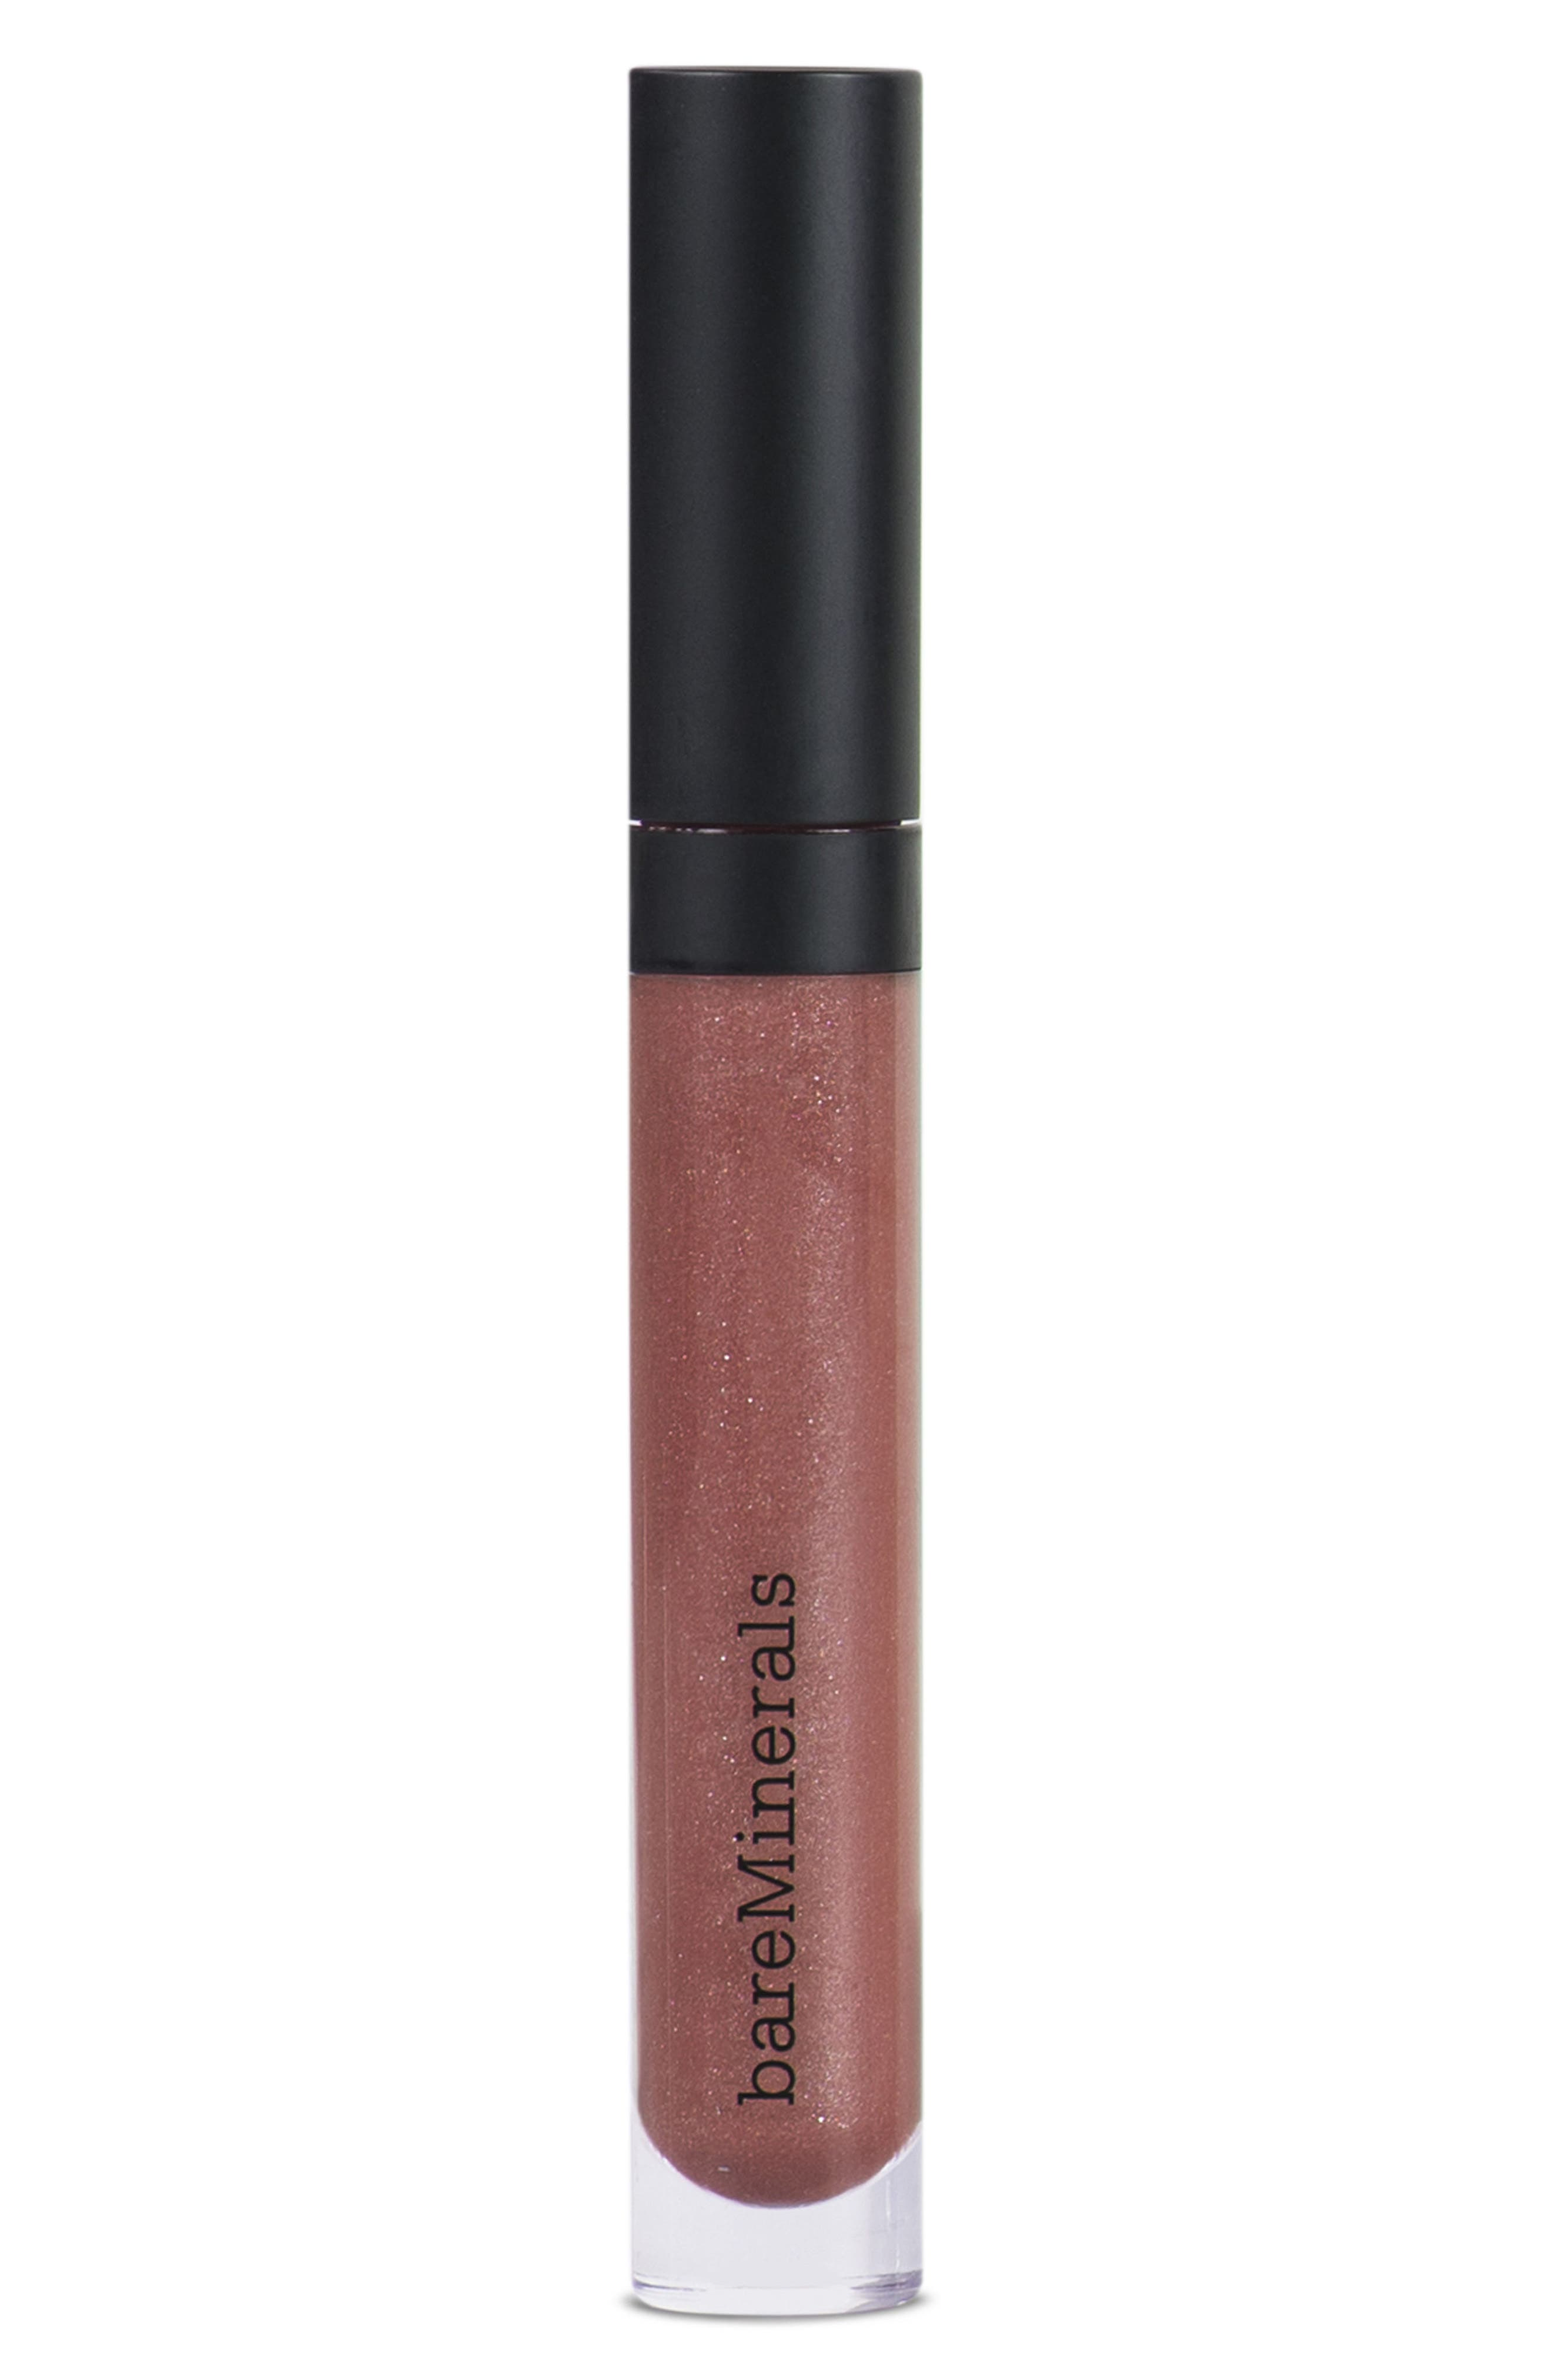 What it is: A luscious, vibrant lip plumper that gives lips a wash of sheer-to-medium color. What it does: This high-gloss, lightweight formula is filled with natural ingredients that smooth and hydrate the lips. It slips on with a refreshing yet subtle peppermint tingle, while a luxurious blend of shea, avocado and murumuru butters help to retain moisture and hydrate the lips. Its skin-friendly ingredients plump with naturally derived peptides,